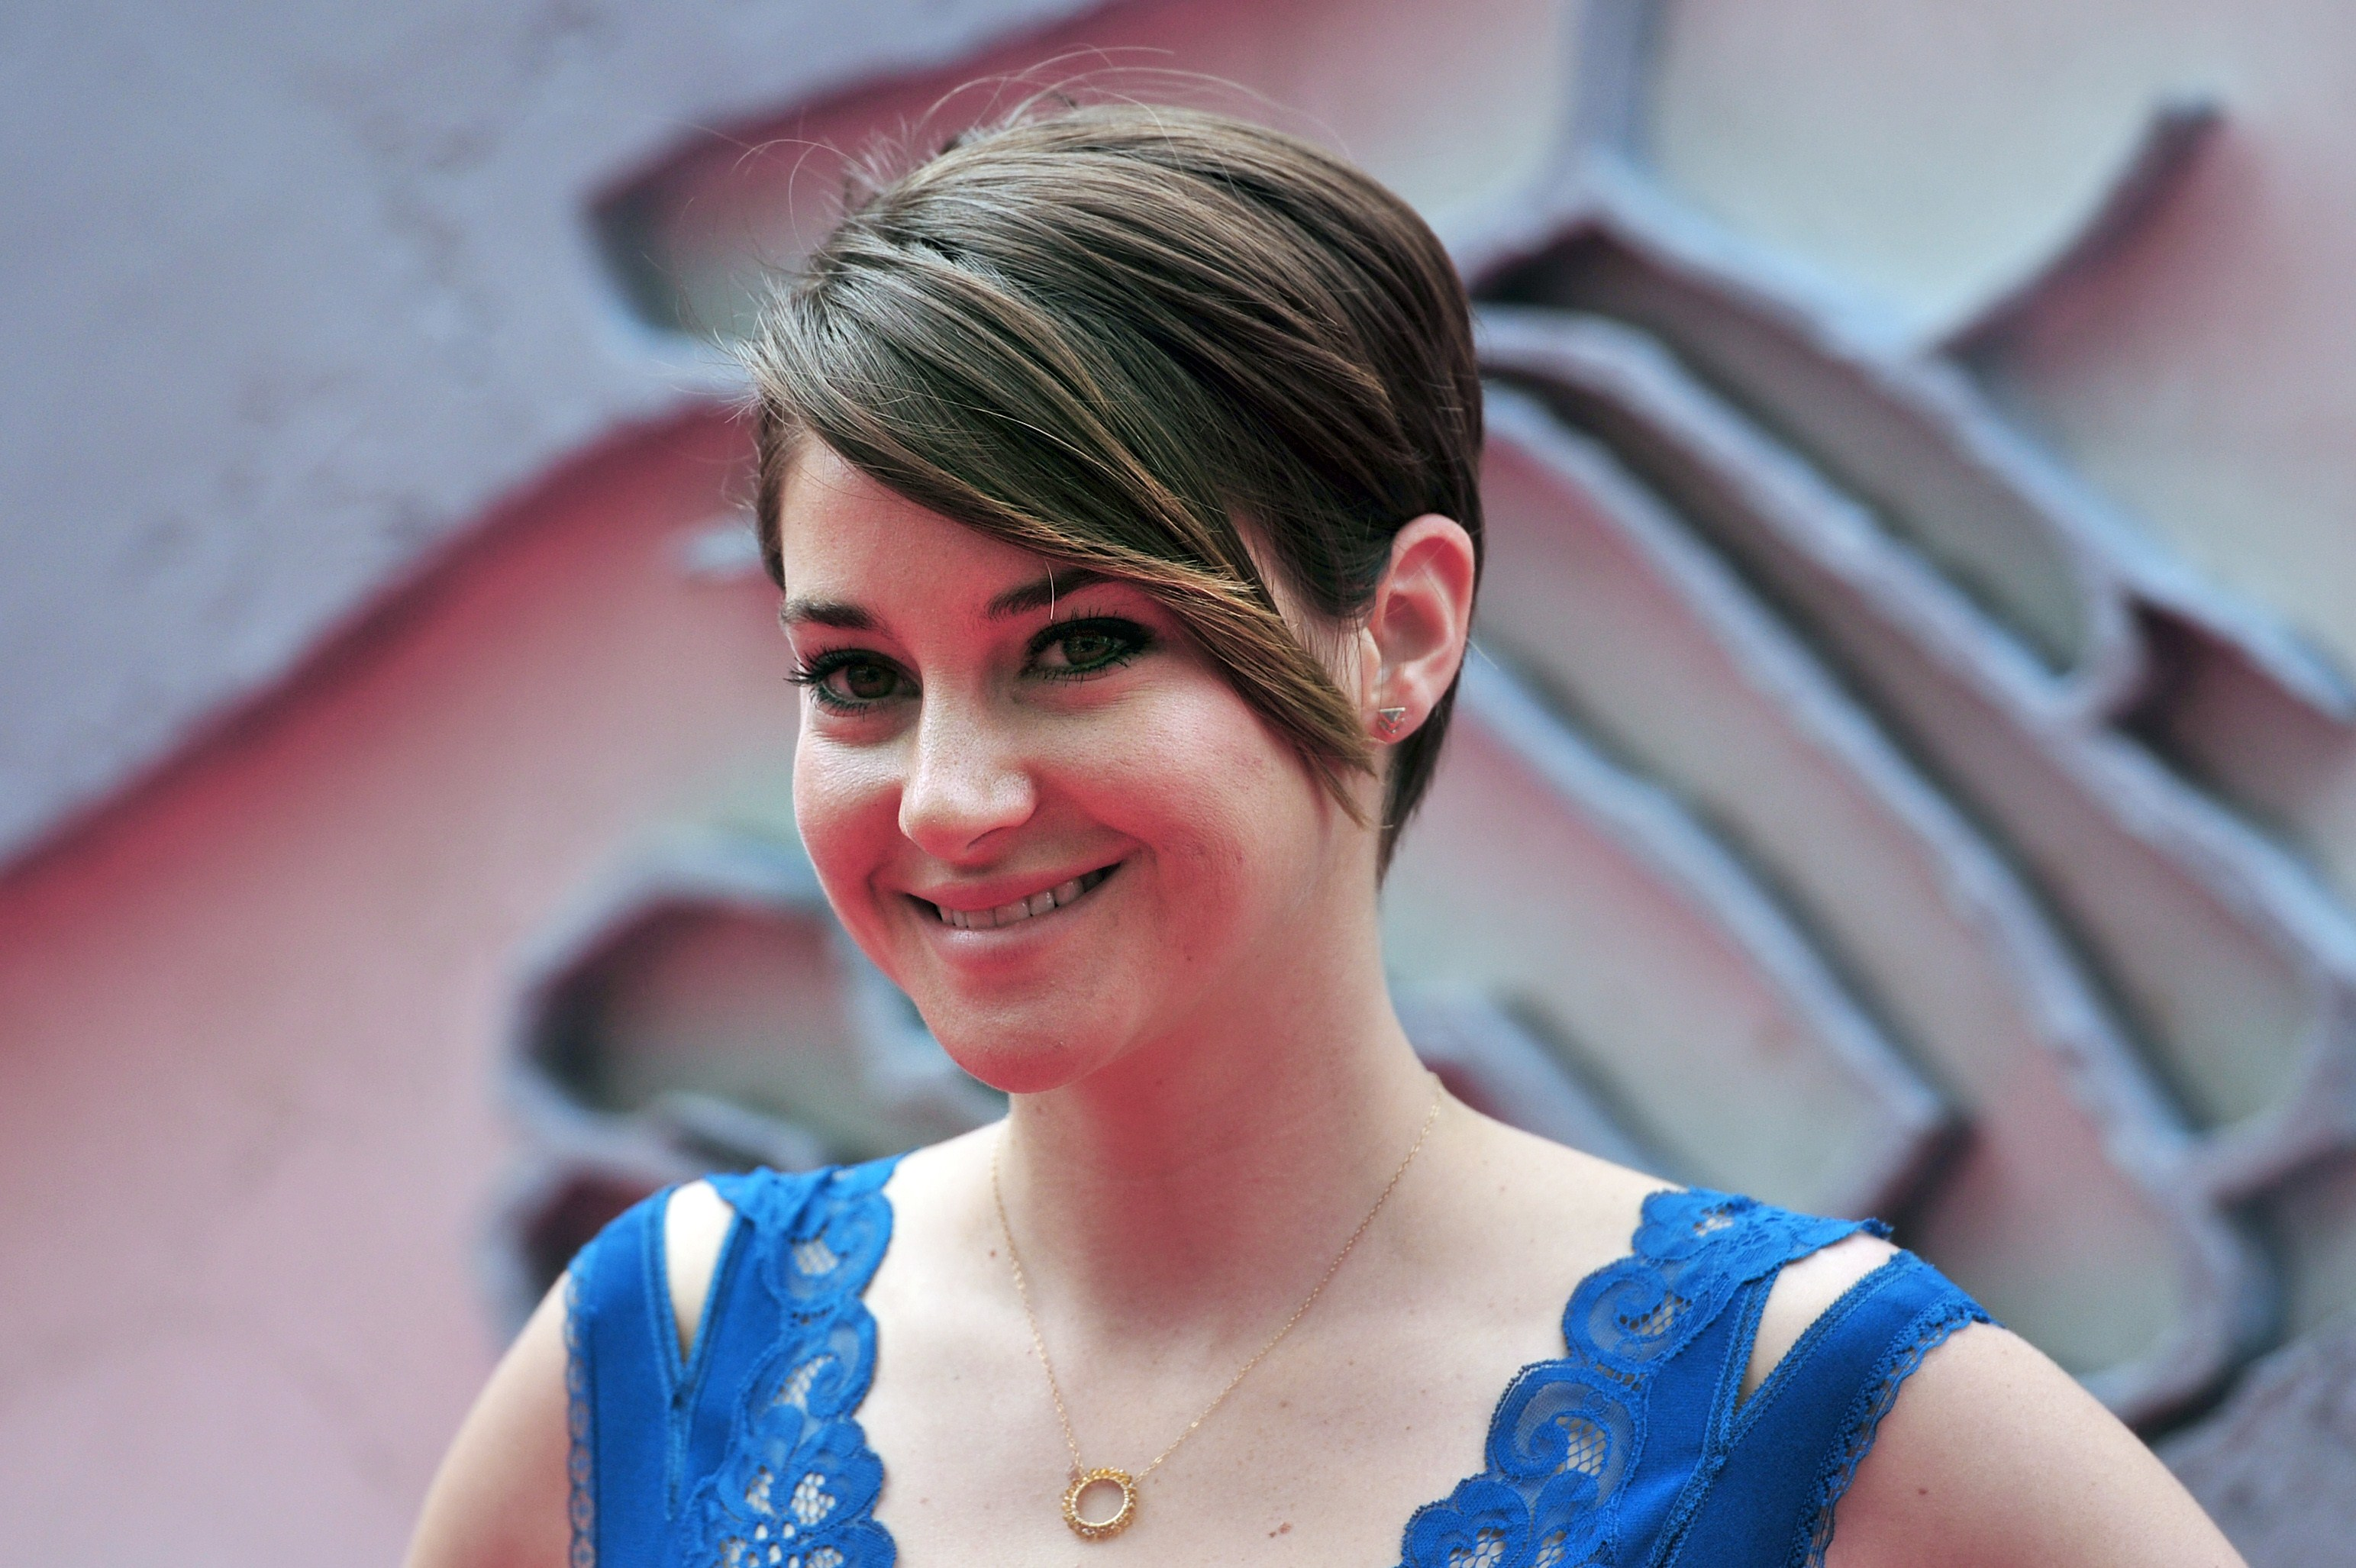 Shailene woodley smile wide wallpaper 63134 3086x2054px shailene woodley smile wide wallpaper 63134 altavistaventures Images